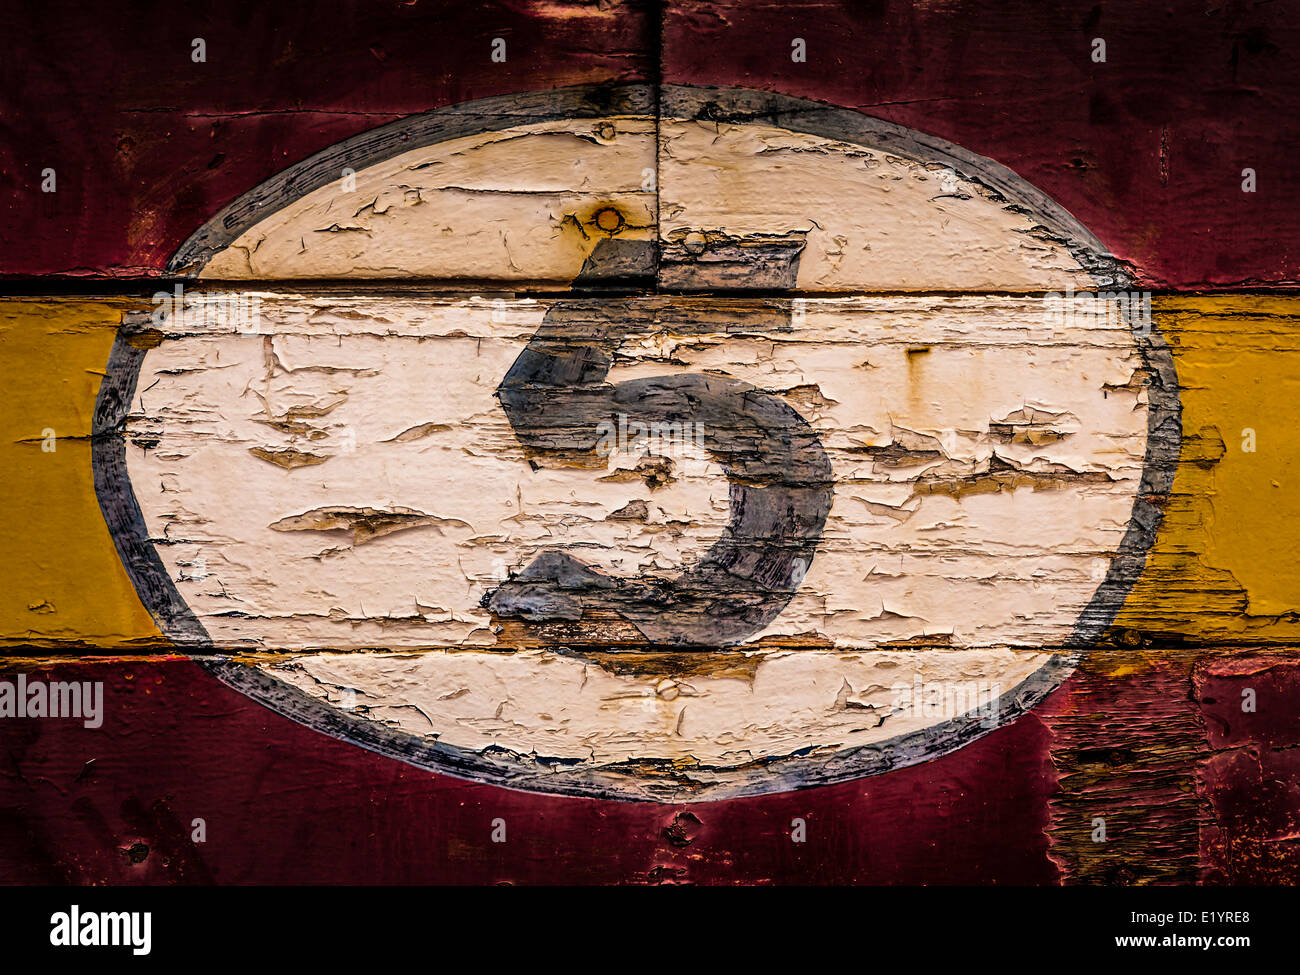 Old painted signs with numerals. Number 5 from a series of numerals. - Stock Image